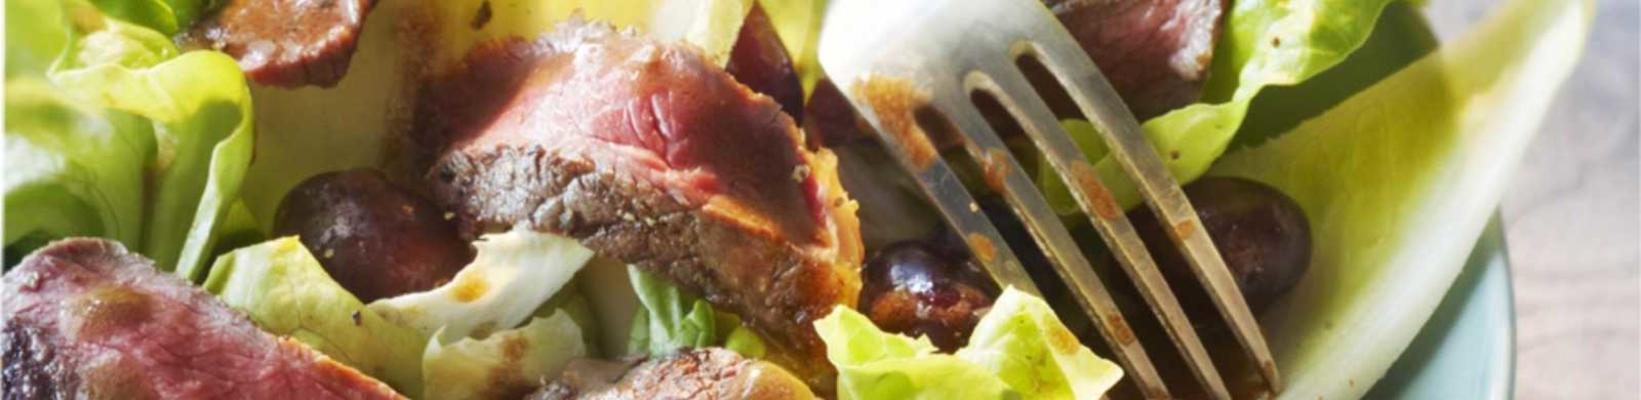 grilled sirloin steak with balsamic vinegar and salad